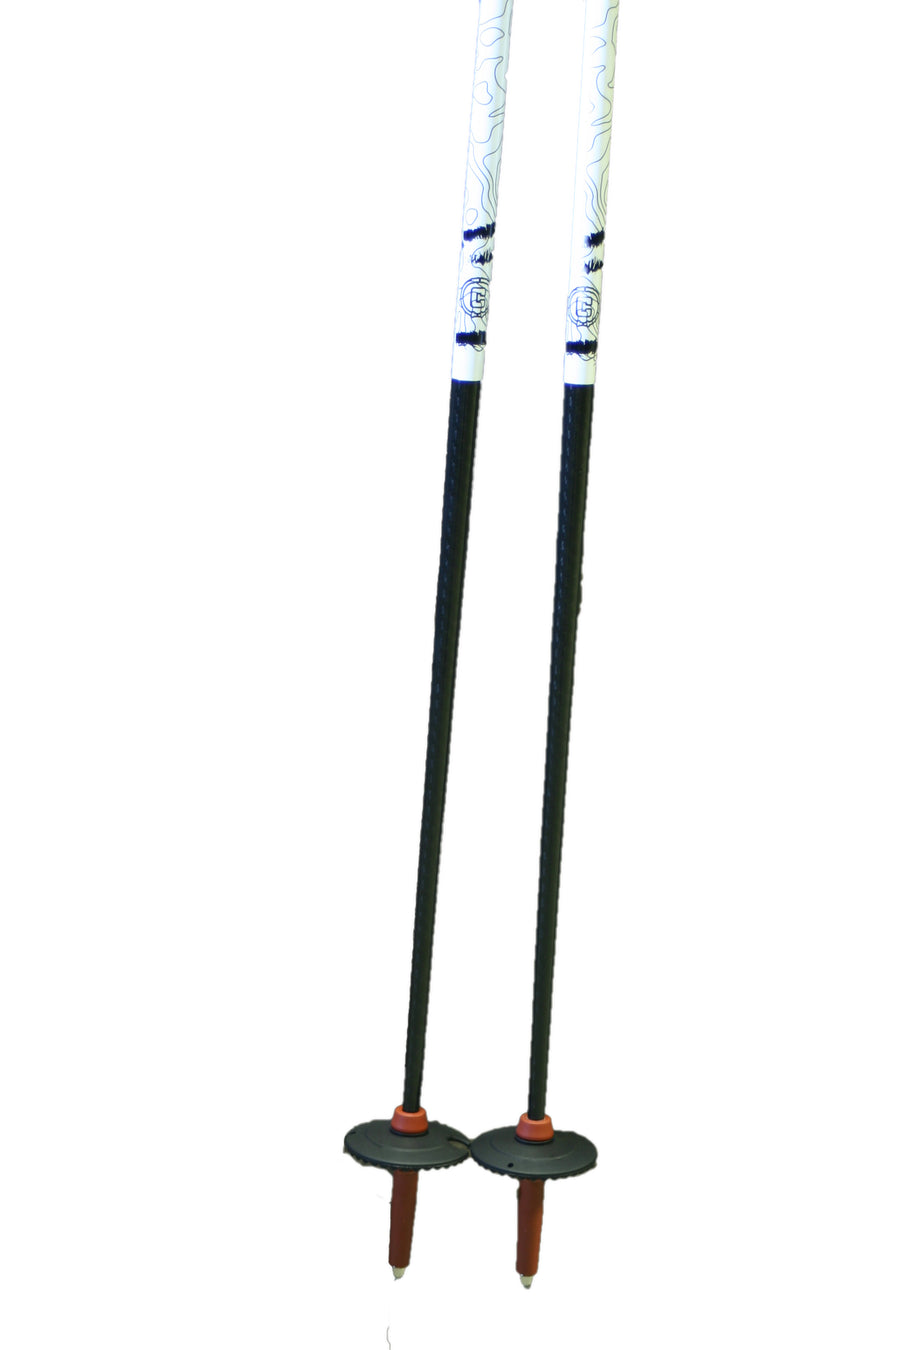 TRAJECTORY Carbon Ski Pole - Burgundy